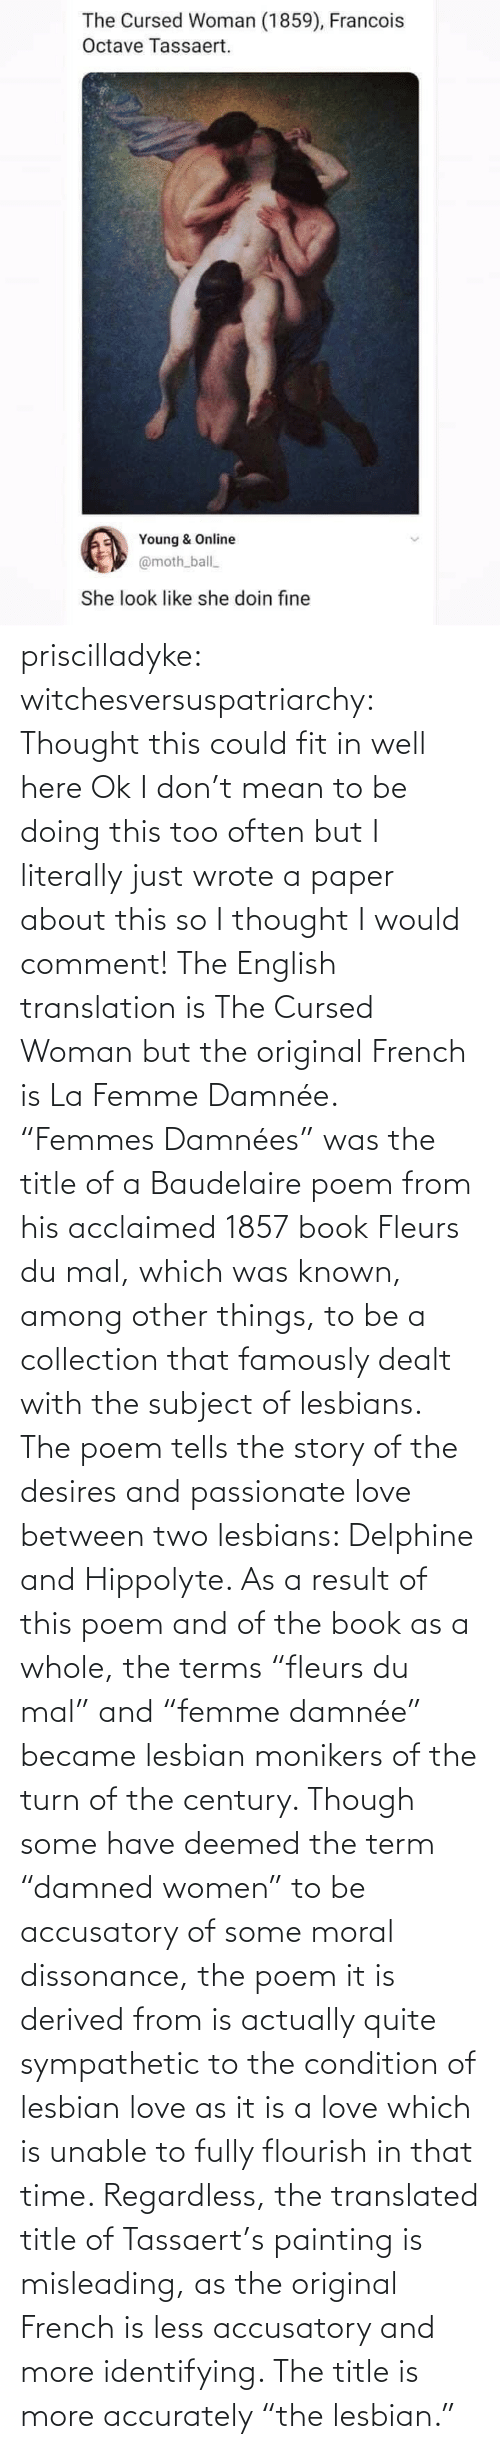 "dealt: priscilladyke:  witchesversuspatriarchy: Thought this could fit in well here   Ok I don't mean to be doing this too often but I literally just wrote a paper about this so I thought I would comment! The English translation is The Cursed Woman but the original French is La Femme Damnée. ""Femmes Damnées"" was the title of a Baudelaire poem from his acclaimed 1857 book Fleurs du mal, which was known, among other things, to be a collection that famously dealt with the subject of lesbians. The poem tells the story of the desires and passionate love between two lesbians:  Delphine and Hippolyte. As a result of this poem and of the book as a whole, the terms ""fleurs du mal"" and ""femme damnée"" became lesbian monikers of the turn of the century. Though some have deemed the term ""damned women"" to be accusatory of some moral dissonance, the poem it is derived from is actually quite sympathetic to the condition of lesbian love as it is a love which is unable to fully flourish in that time. Regardless, the translated title of Tassaert's painting is misleading, as the original French is less accusatory and more identifying. The title is more accurately ""the lesbian."""